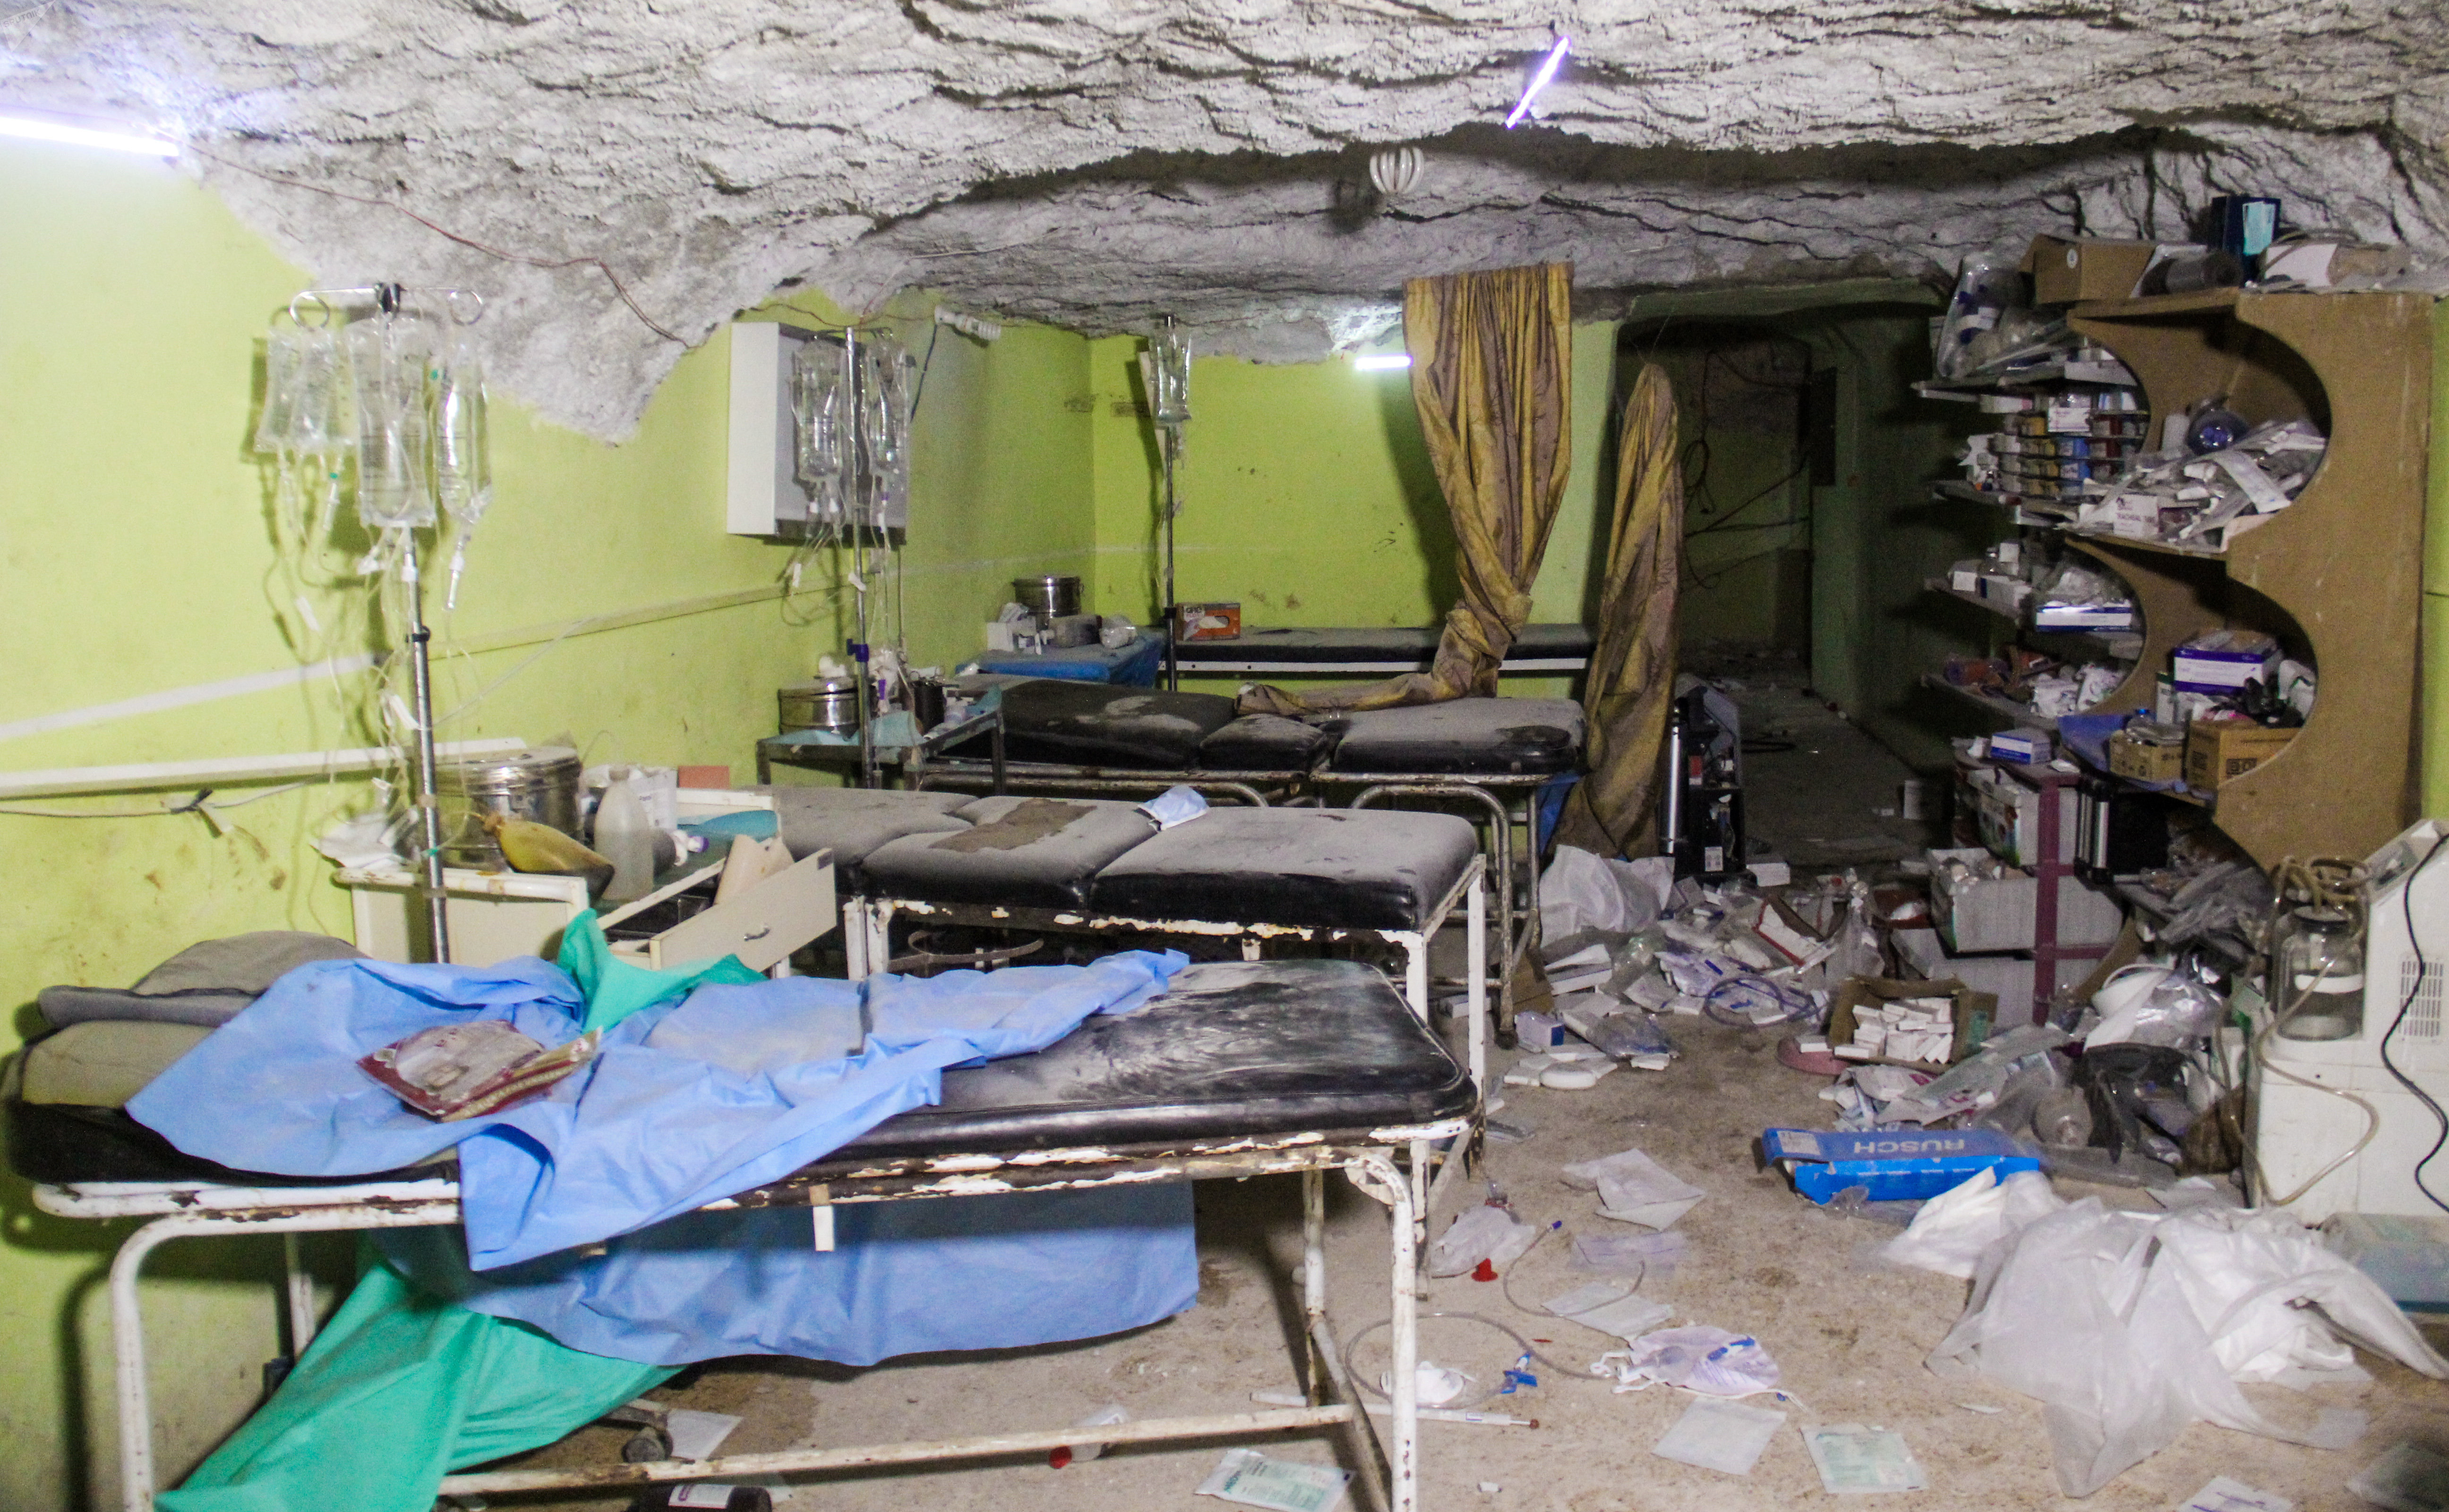 A picture taken on April 4, 2017 shows destruction at a hospital room in Khan Sheikhoun in the northwestern Syrian Idlib province, following a suspected toxic gas attack.